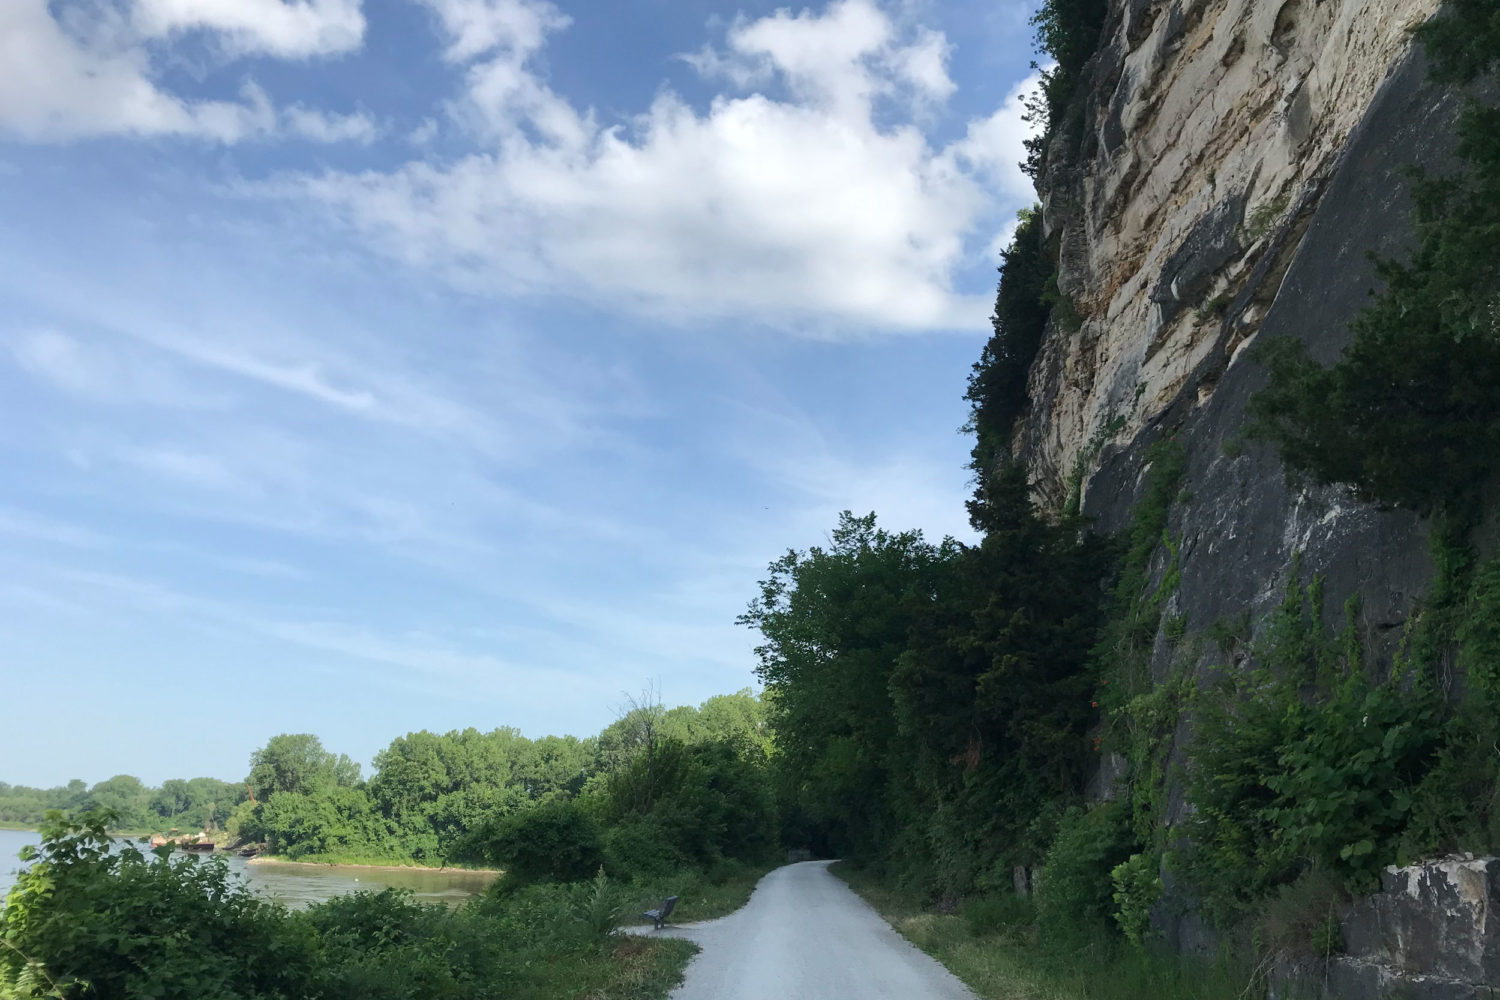 Katy Trail High Bluffs Cycling Vacation